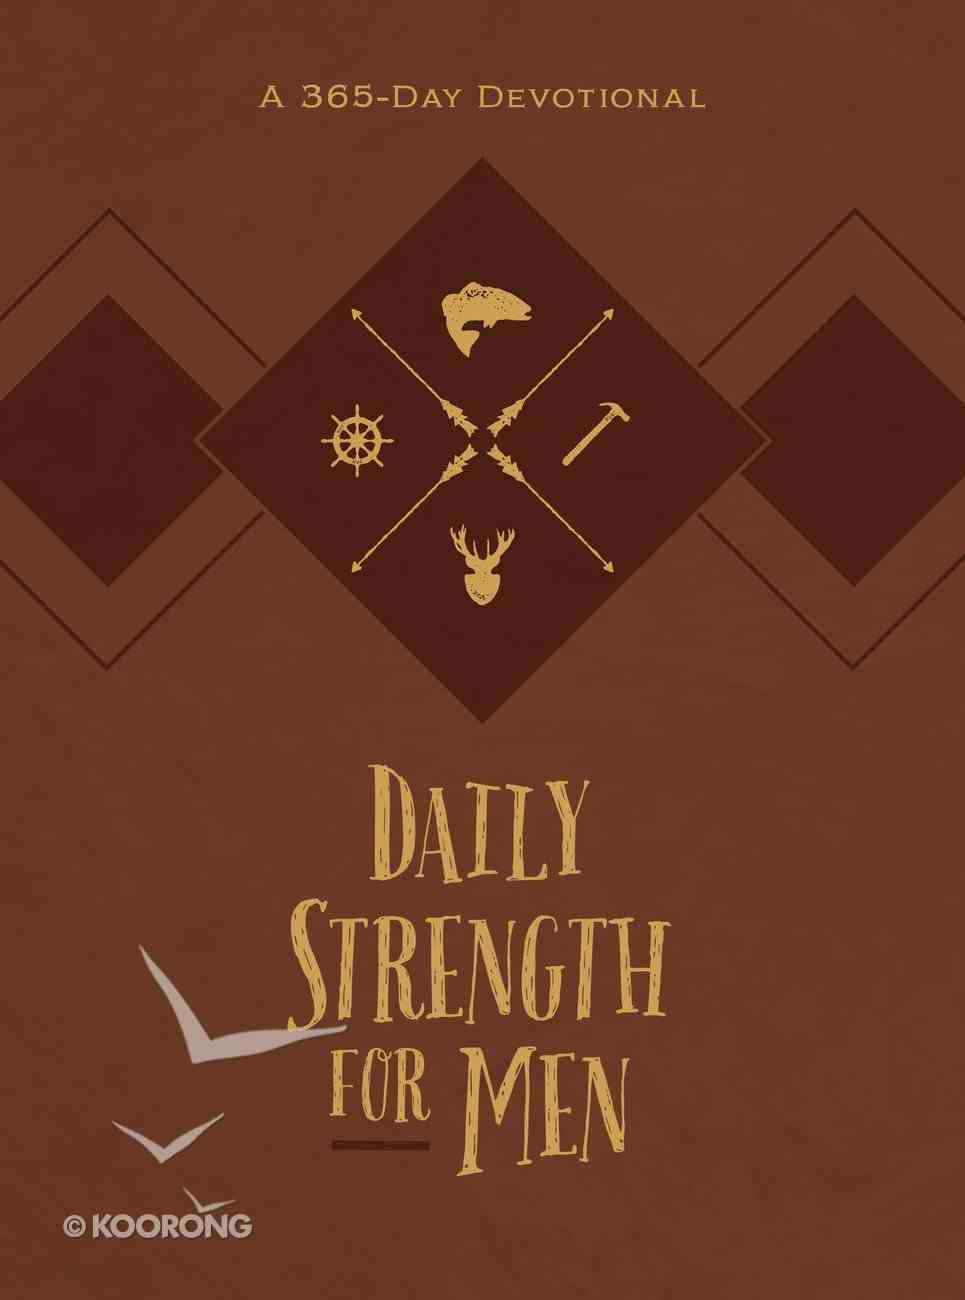 Daily Strength For Men (365 Daily Devotions Series) eBook